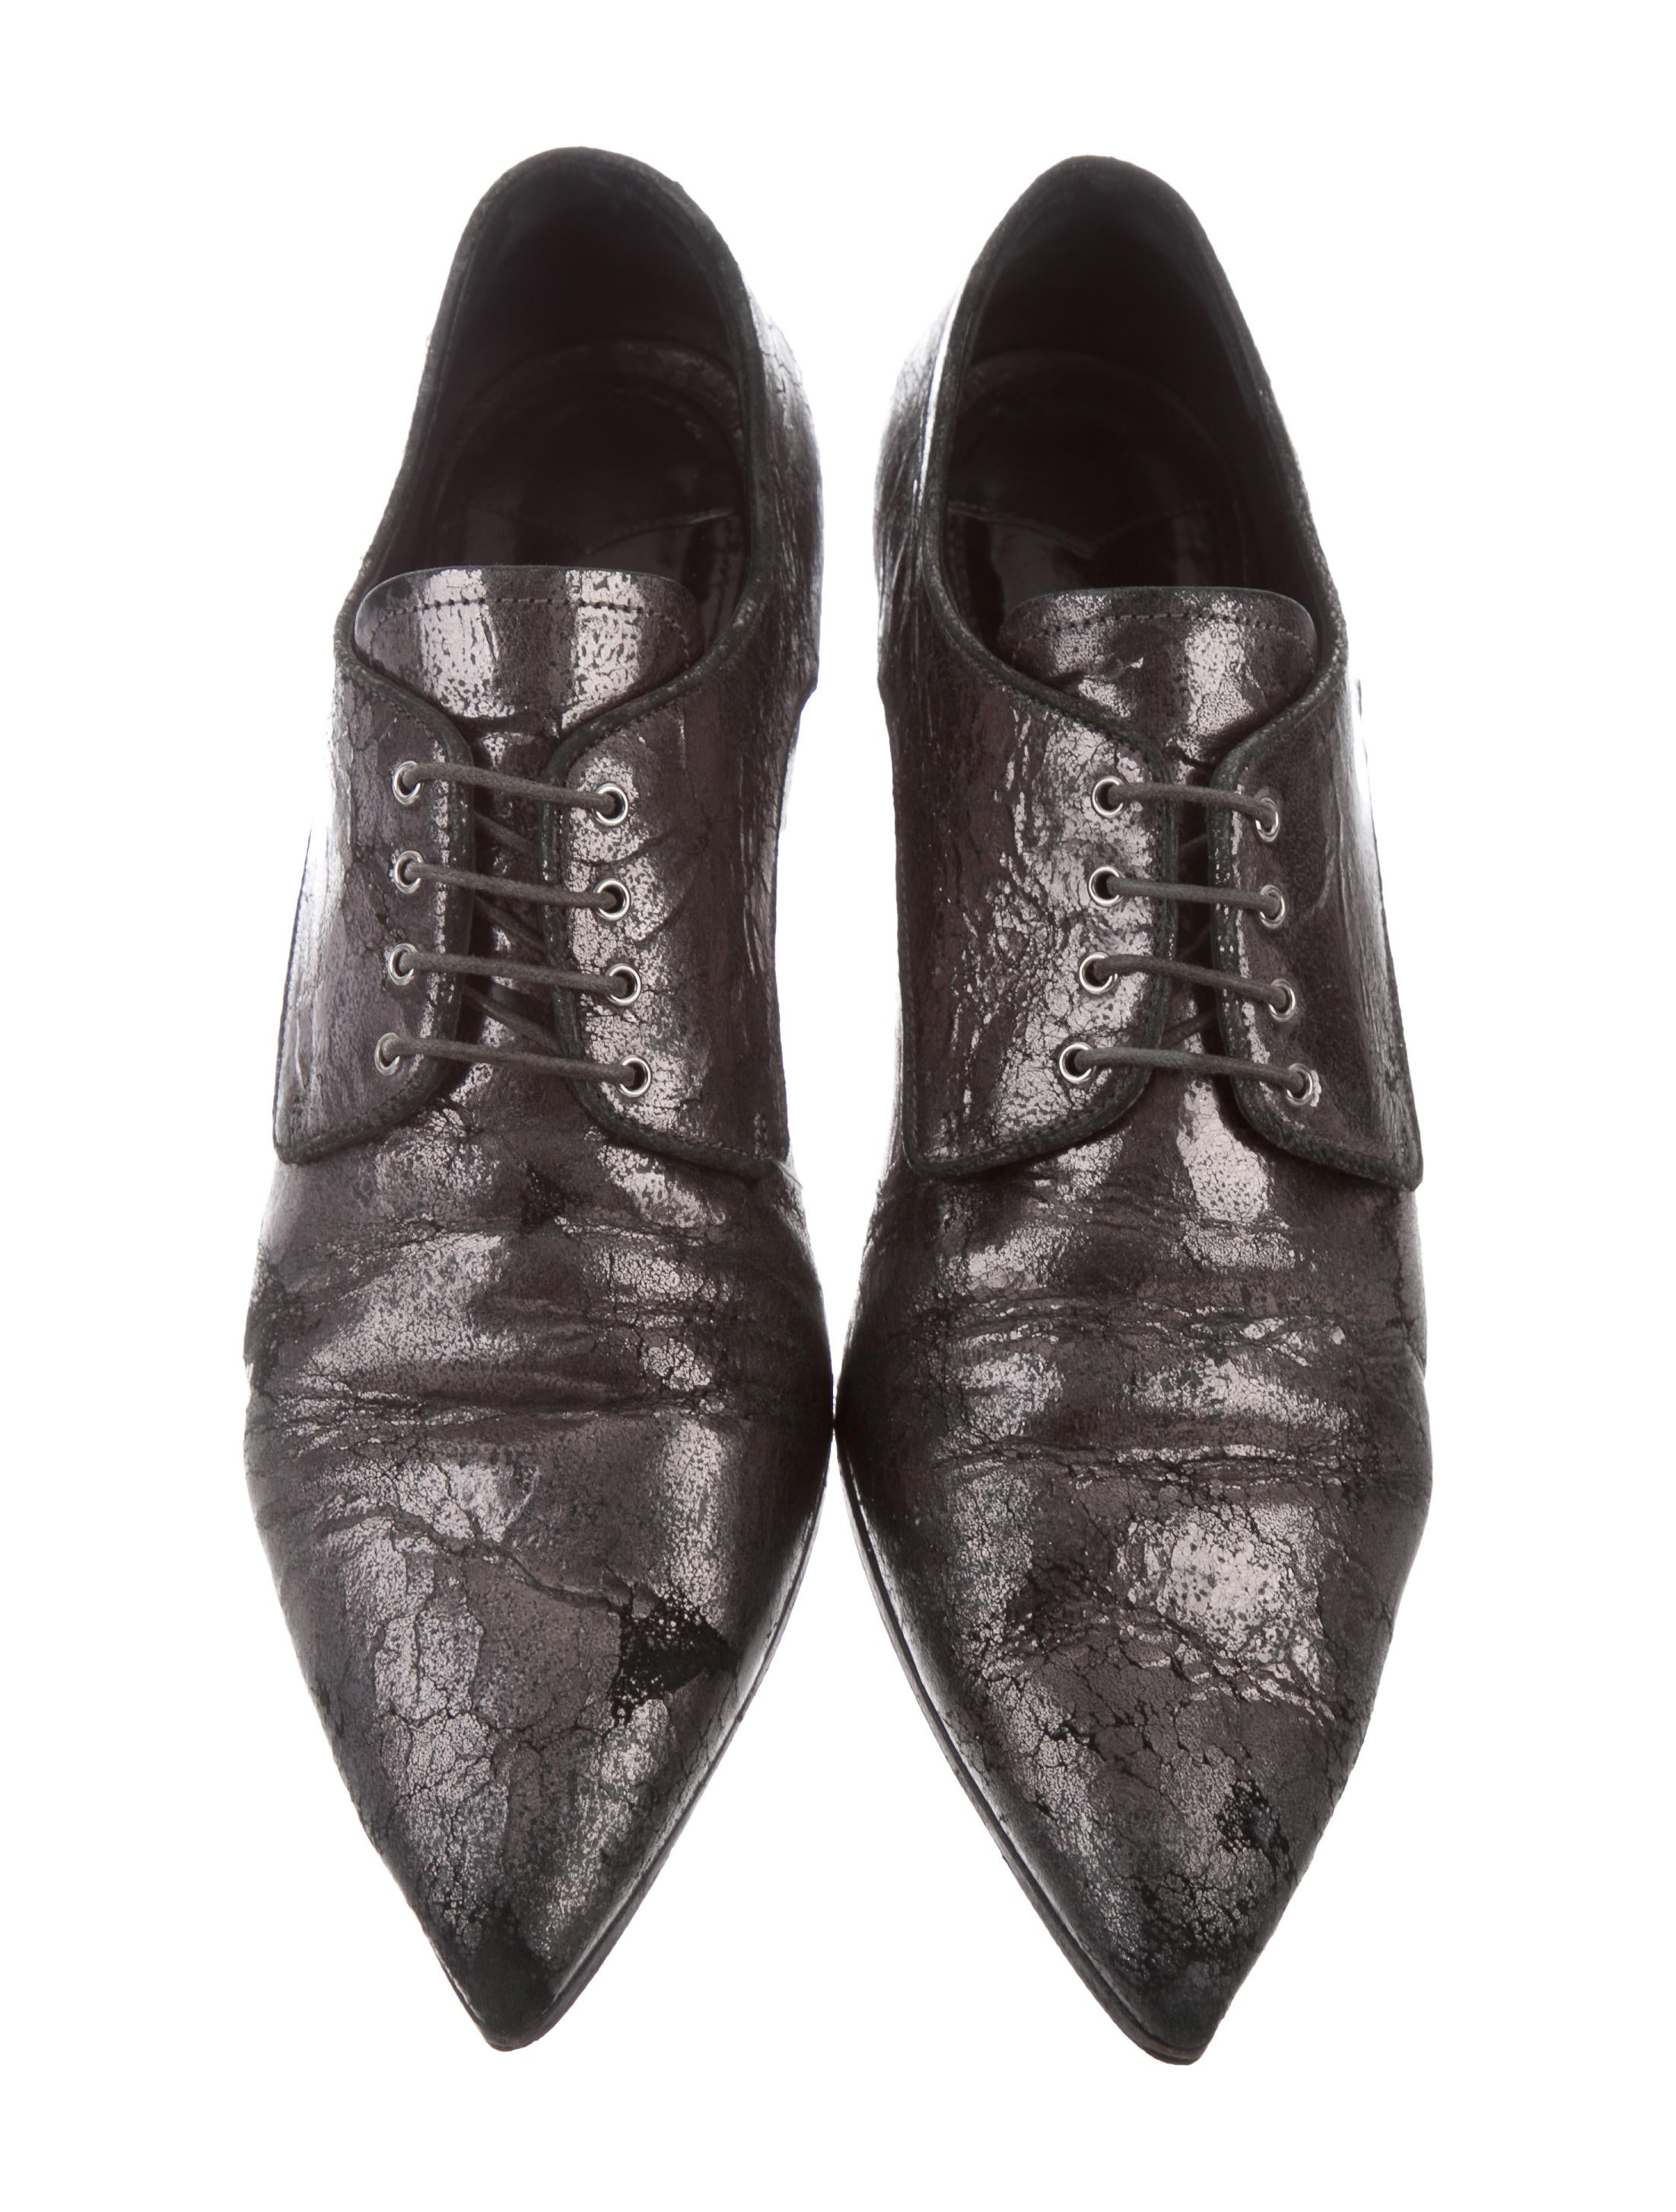 clearance outlet Miu Miu Distressed Pointed-Toe Oxfords buy cheap for nice discount order clearance shop cheap sale finishline fkLkZw